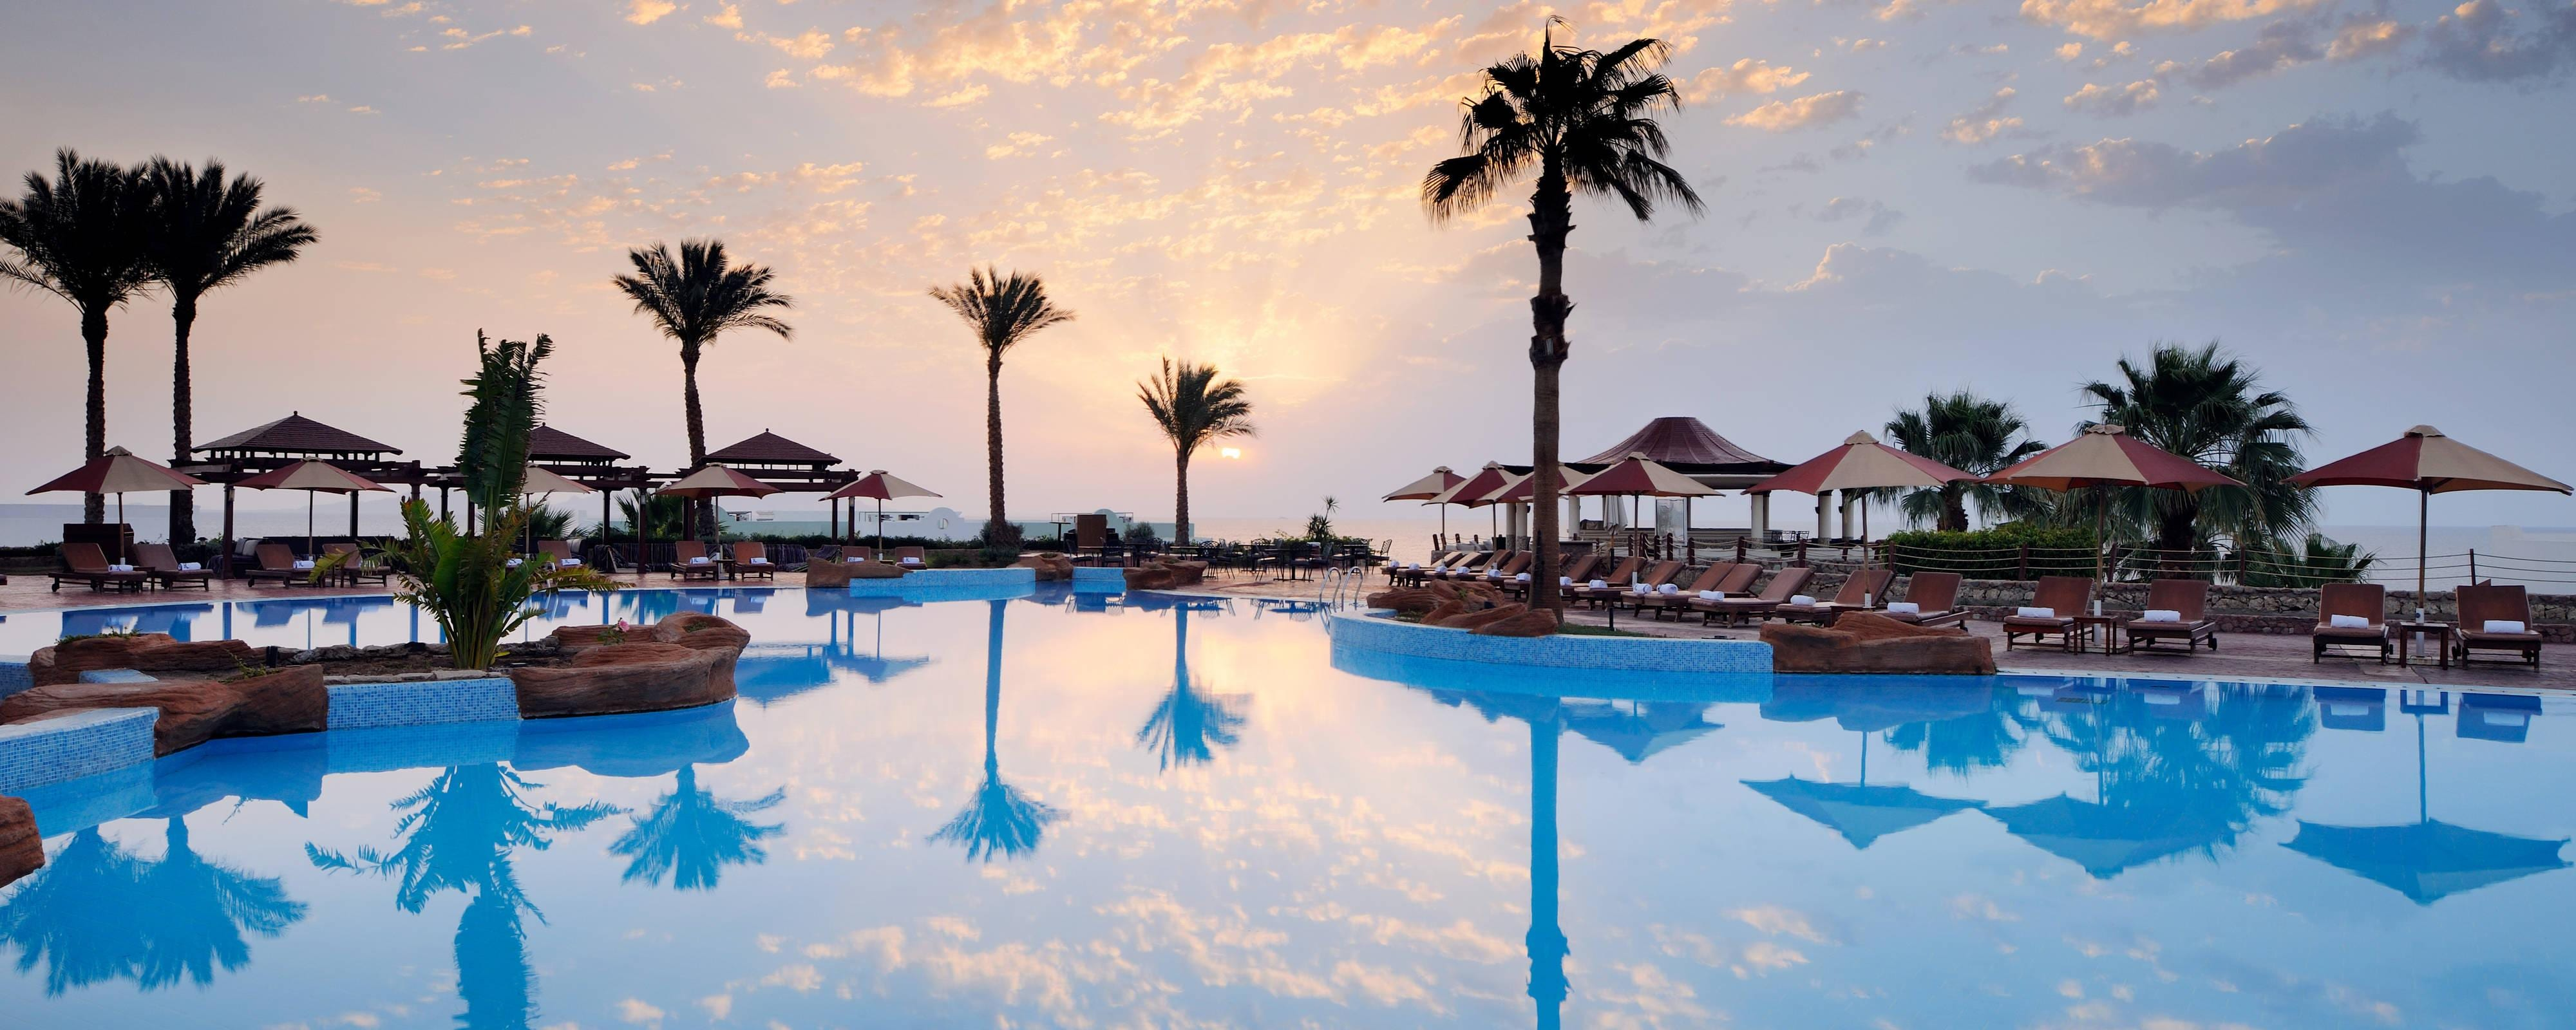 Бассейн курорта Renaissance Sharm El Sheikh Resort